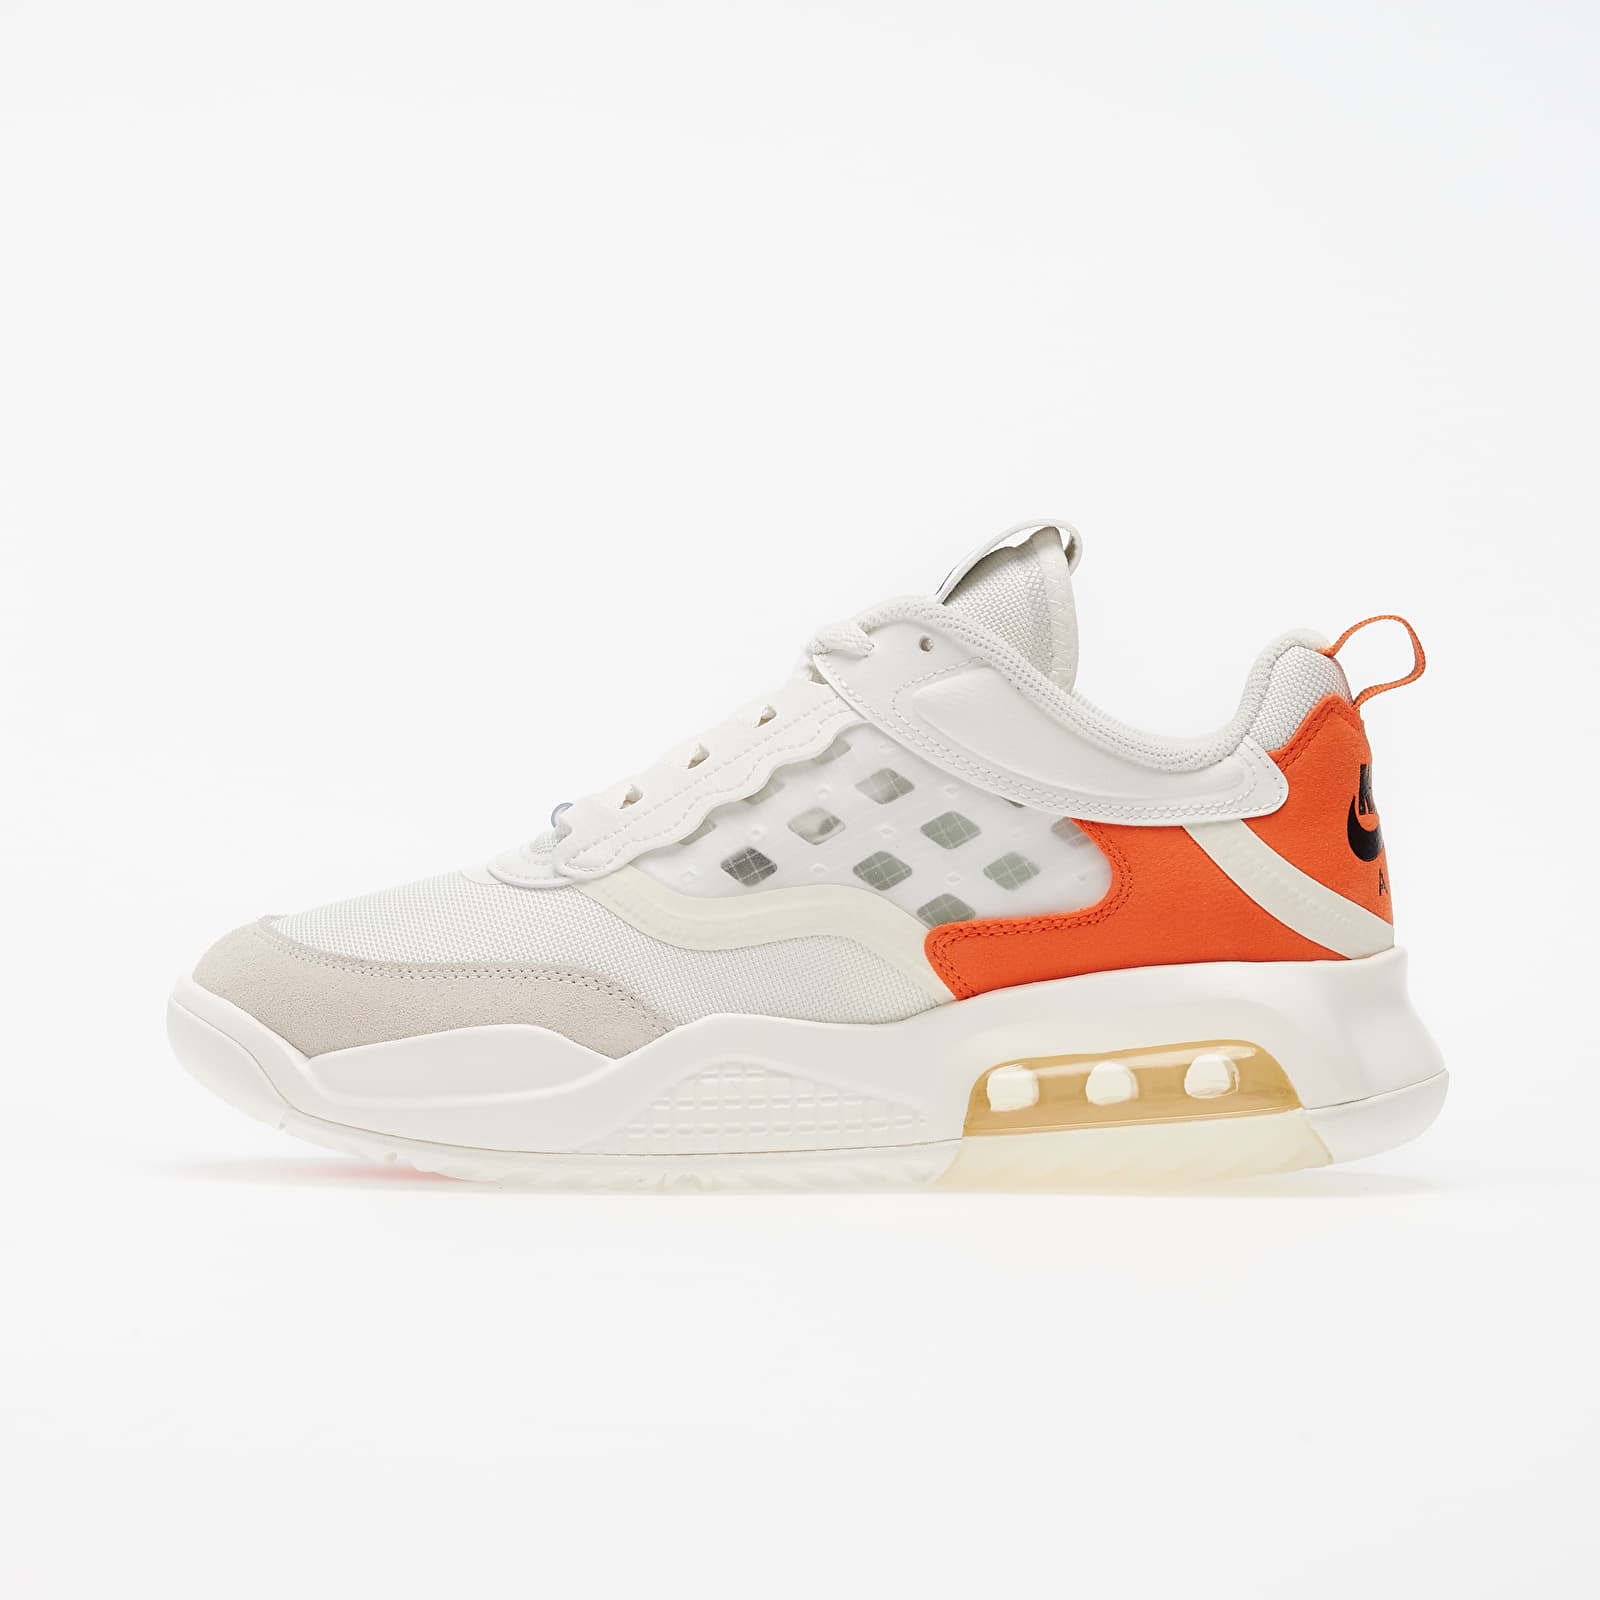 Chaussures et baskets homme Jordan Max 200 Sail/ Black-Starfish-White